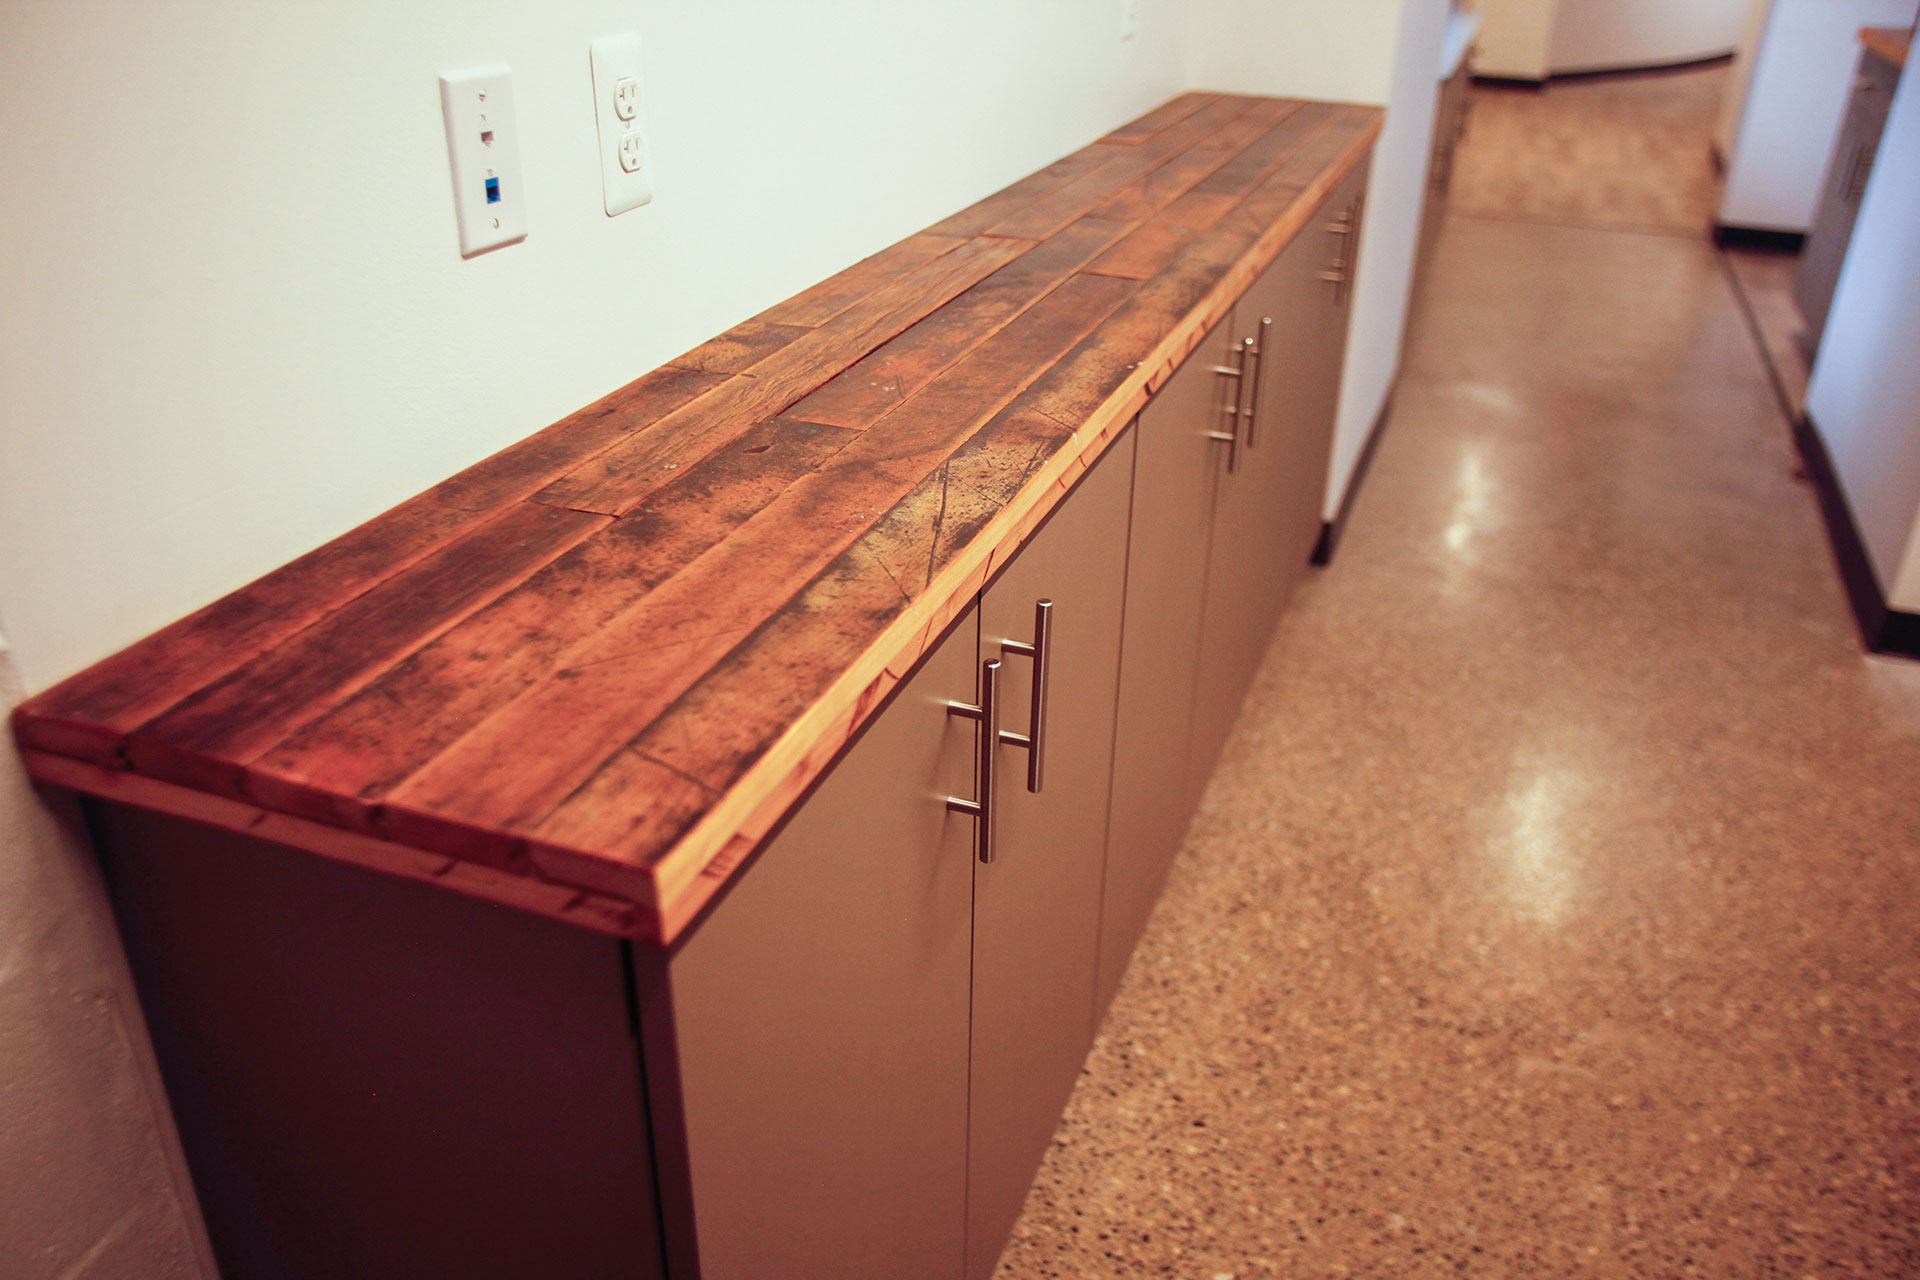 Plastic laminate base cabinets with reclaimed wood flooring countertops.